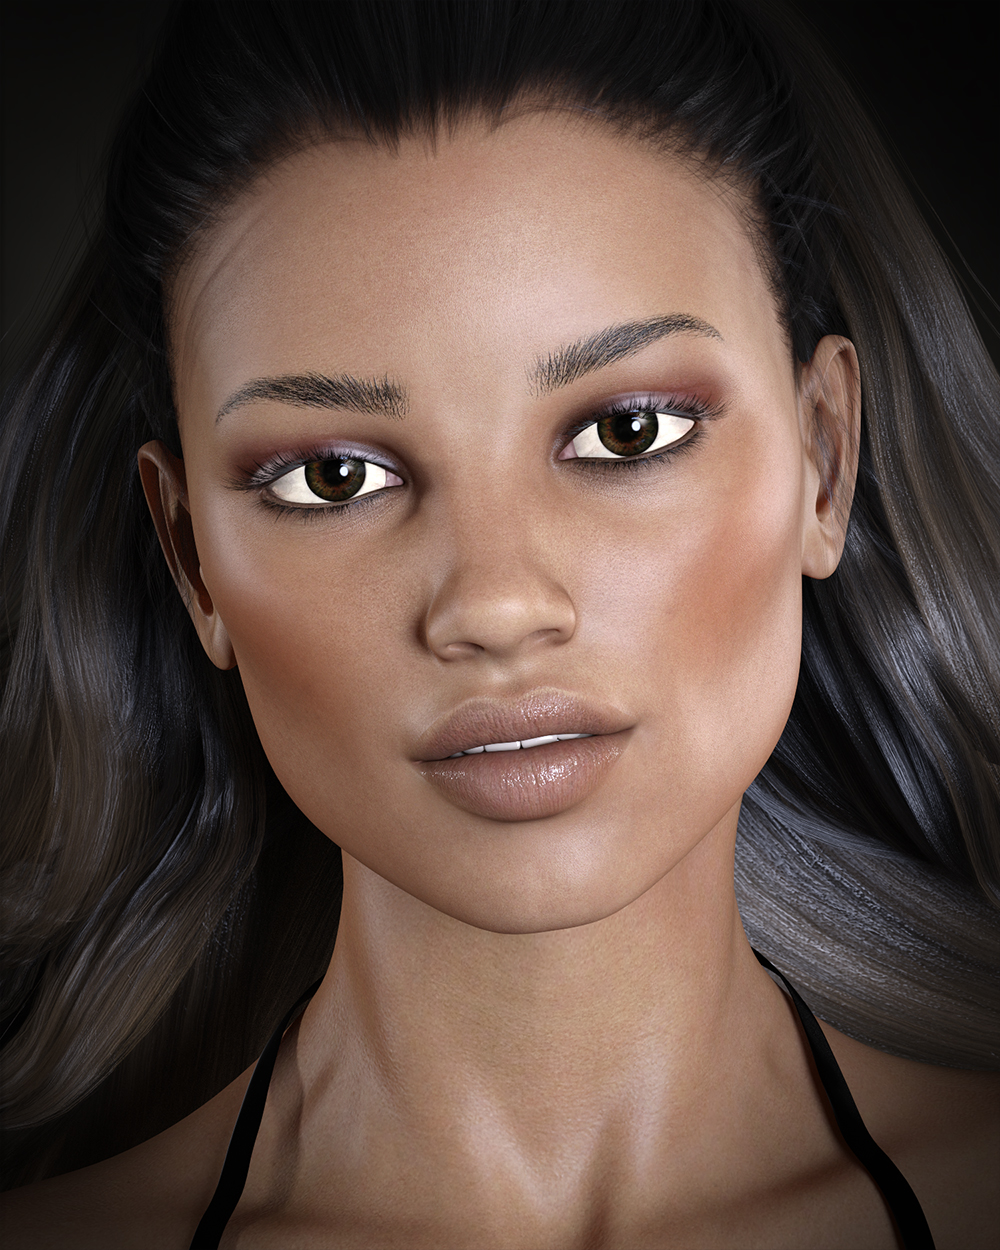 Jordina for Genesis 3 and 8 Female by: CynderBlue, 3D Models by Daz 3D